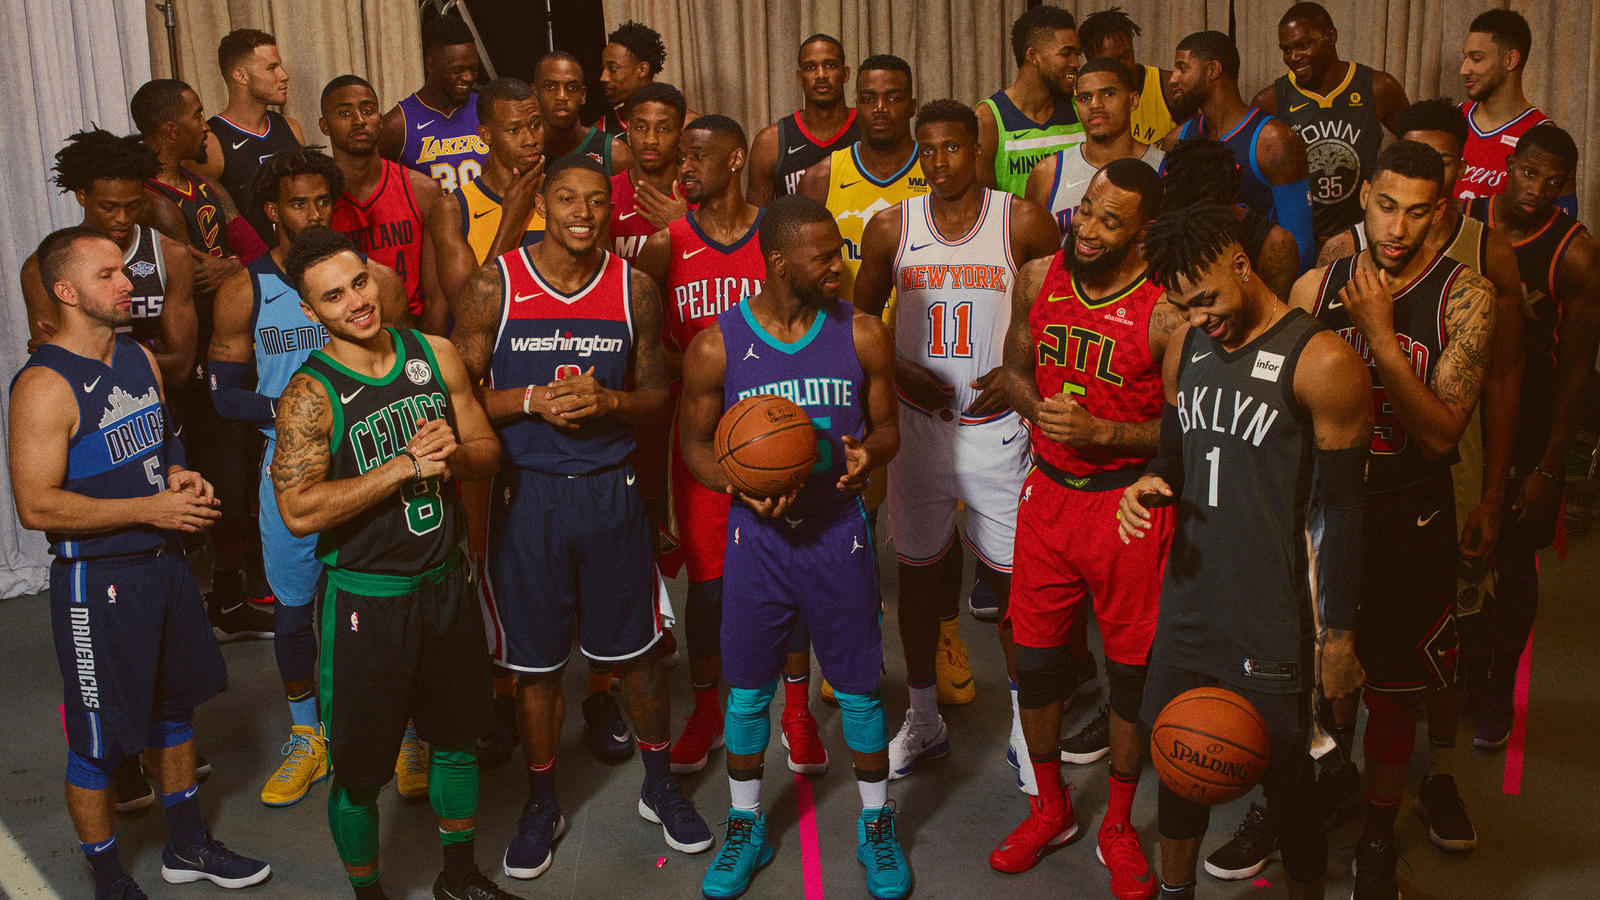 e58d145f6 Here Are All of Nike s NBA Statement Edition Uniforms - Nike News